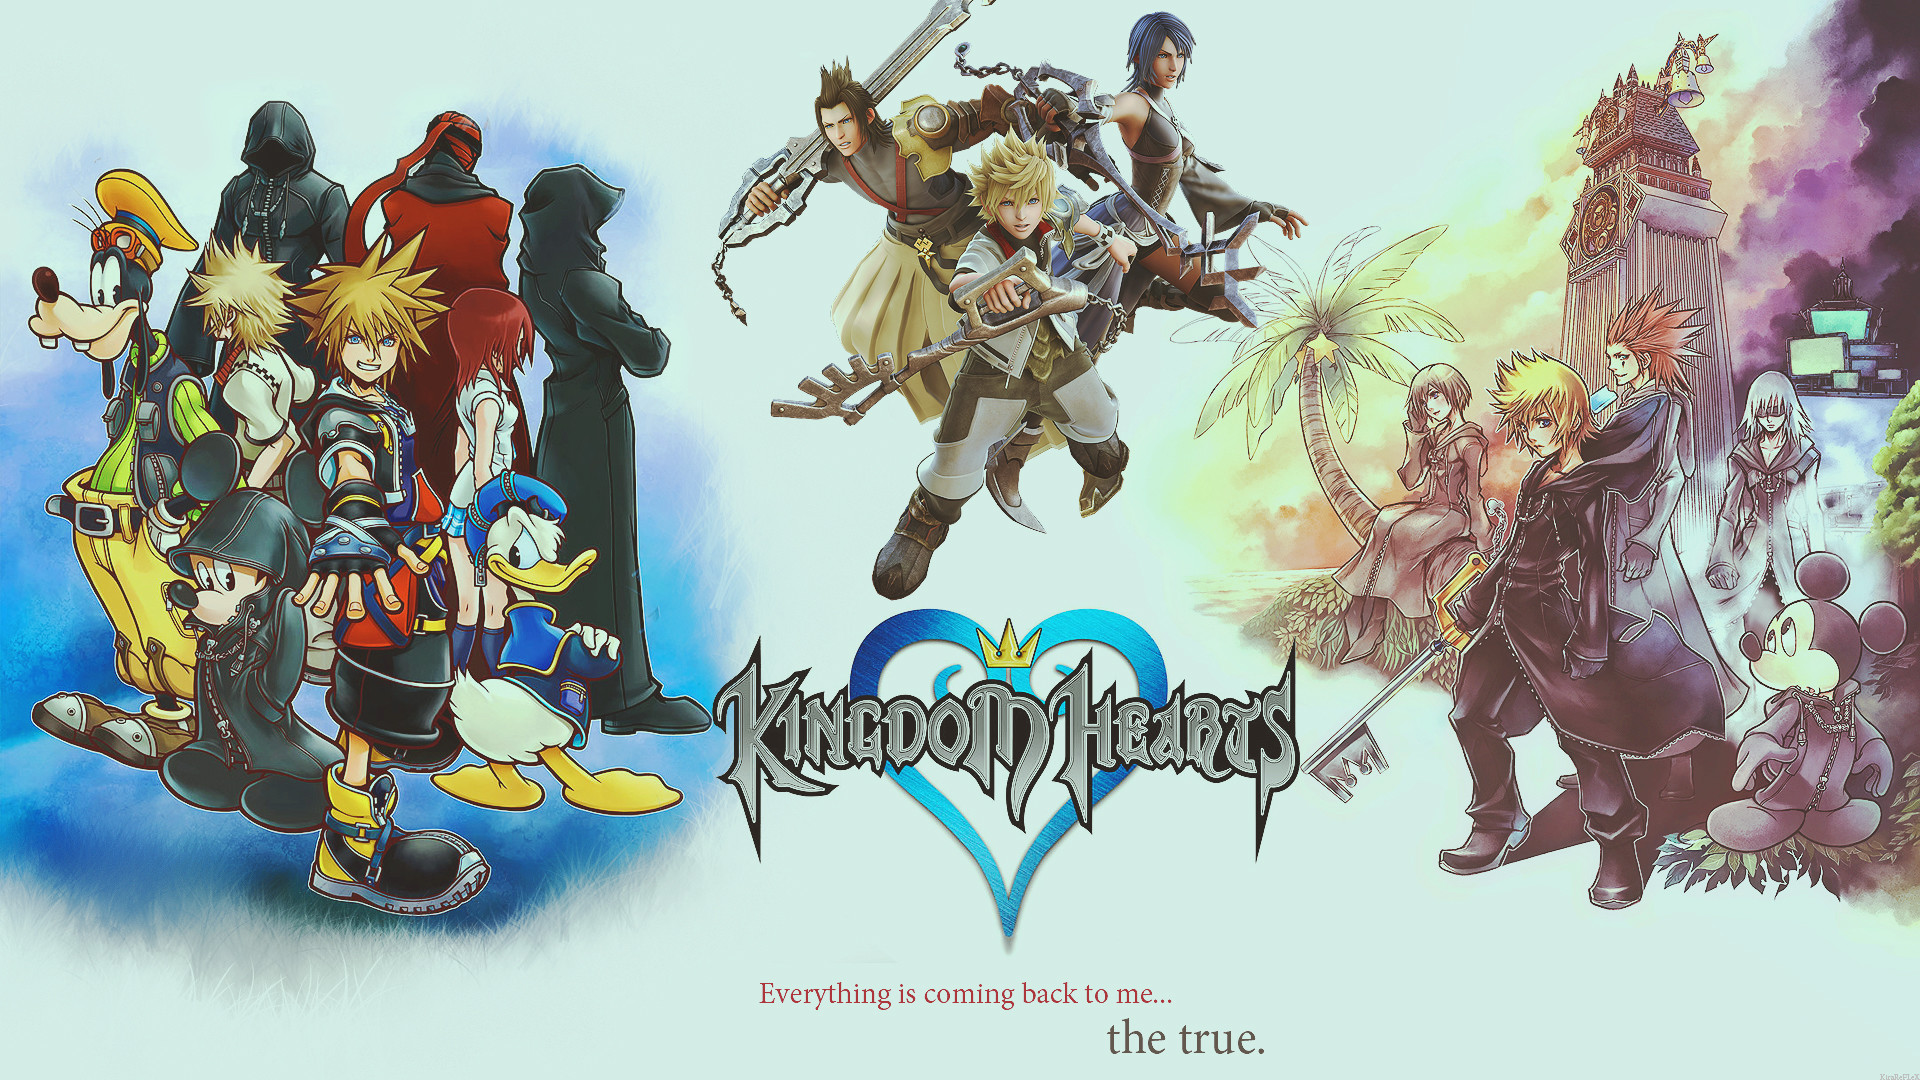 Kingdom Hearts Sora Wallpaper ·①